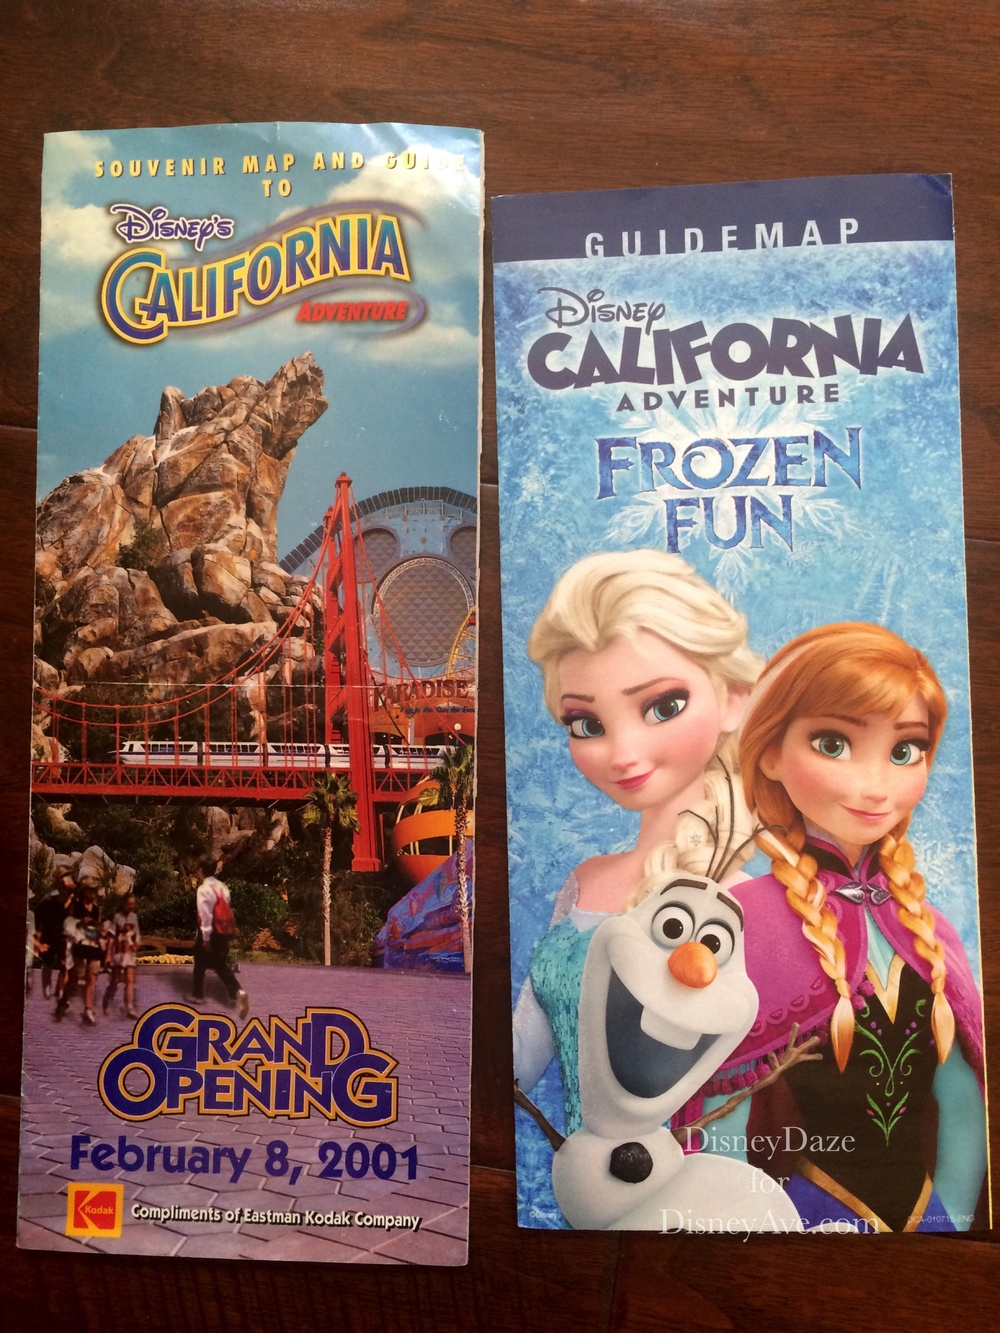 Grand Opening DCA MapFeb 8, 2001 and Current DCA Map Feb 8, 2015